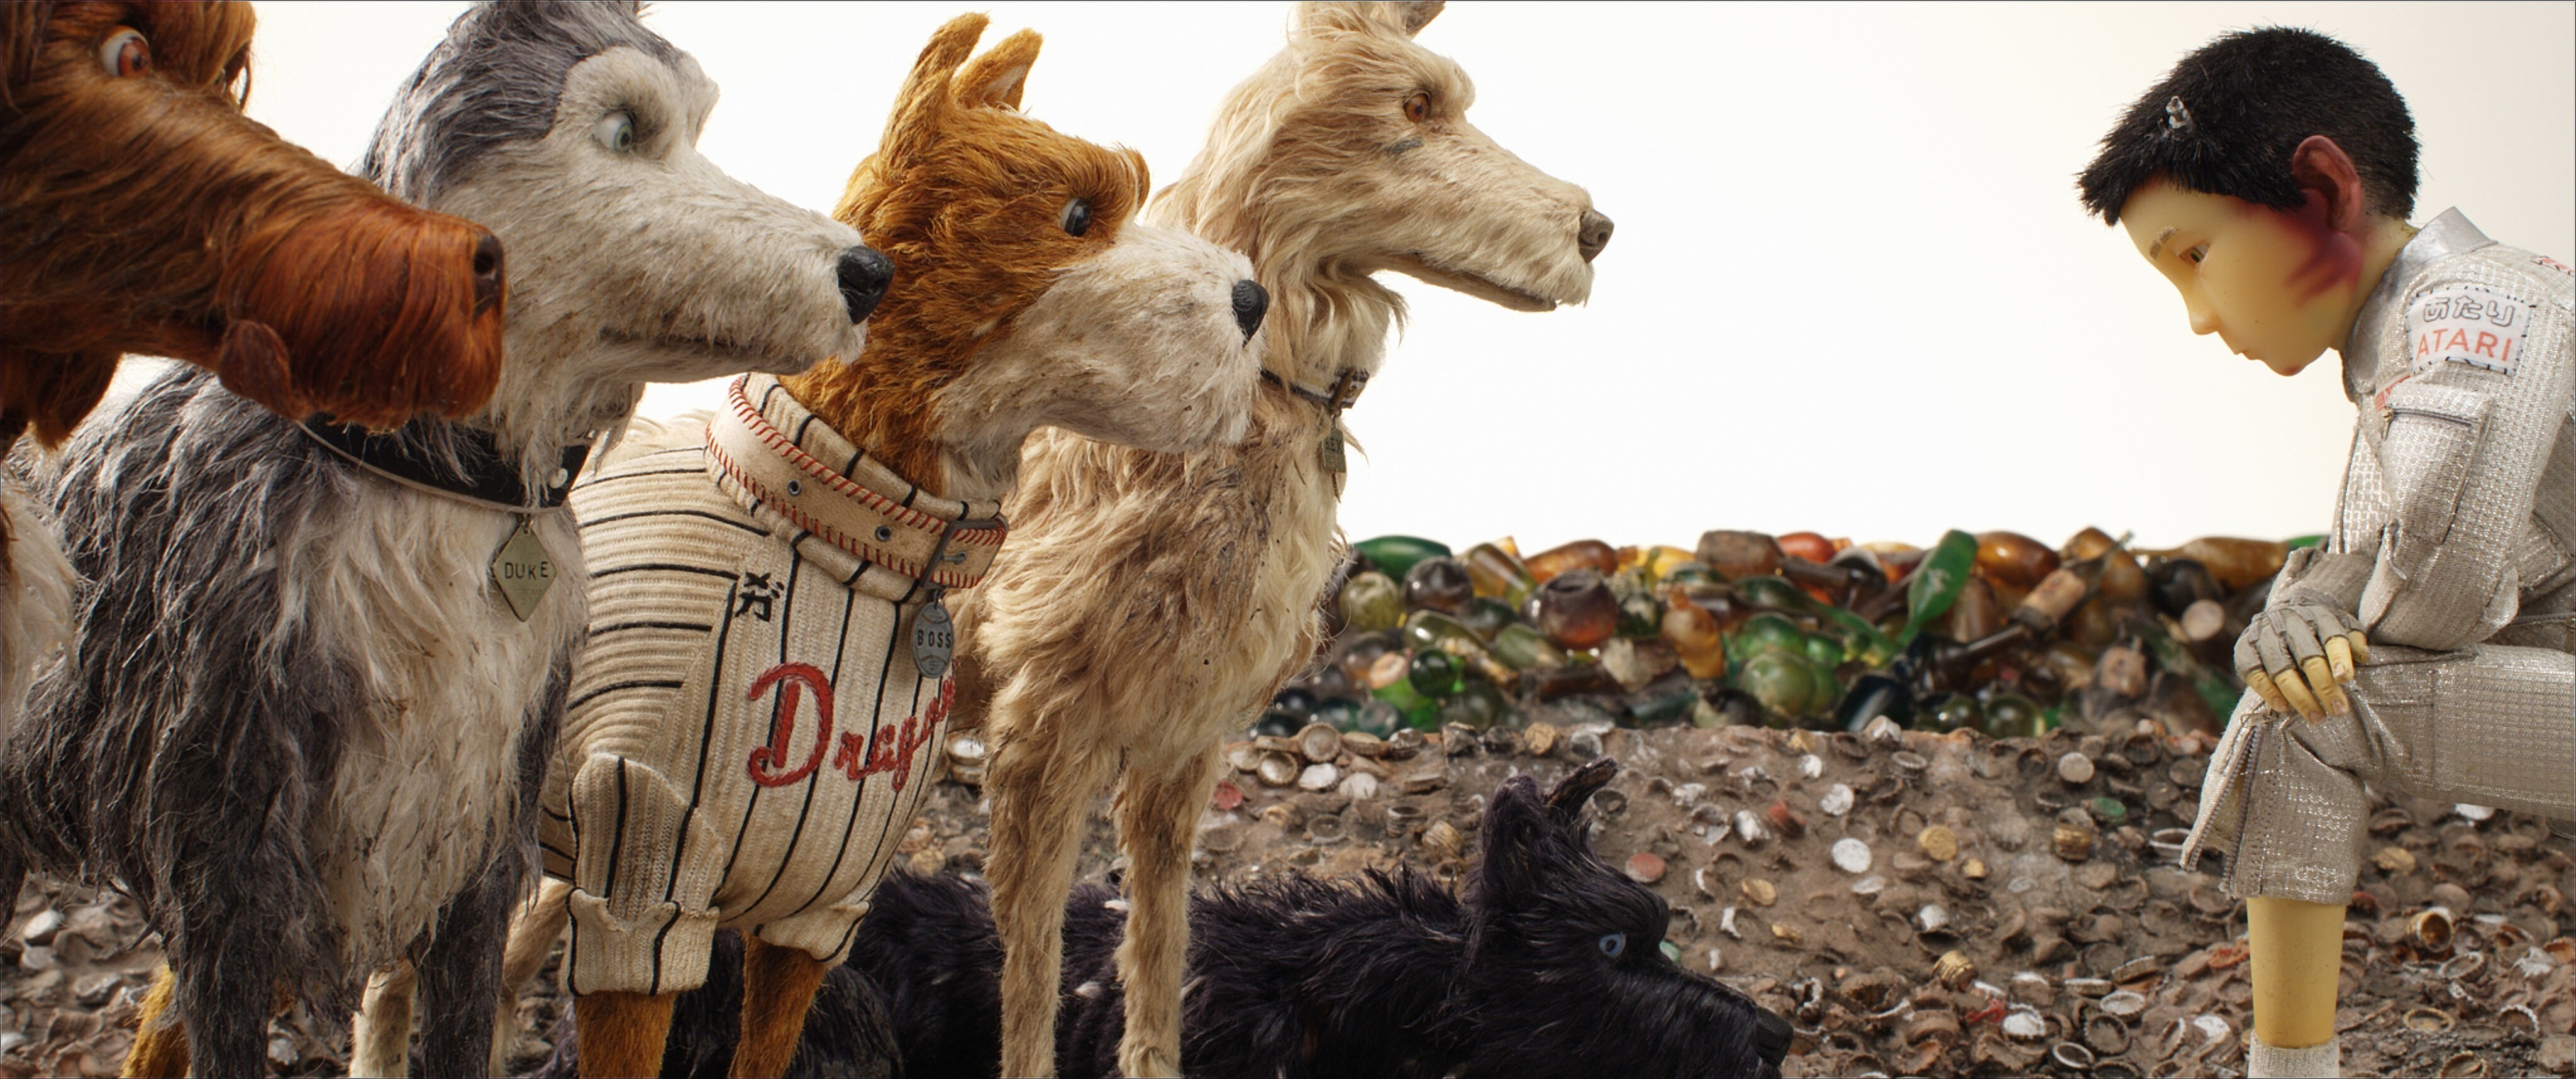 Isle Of Dogs Movie 4k Wallpaper Hd Wallpapers